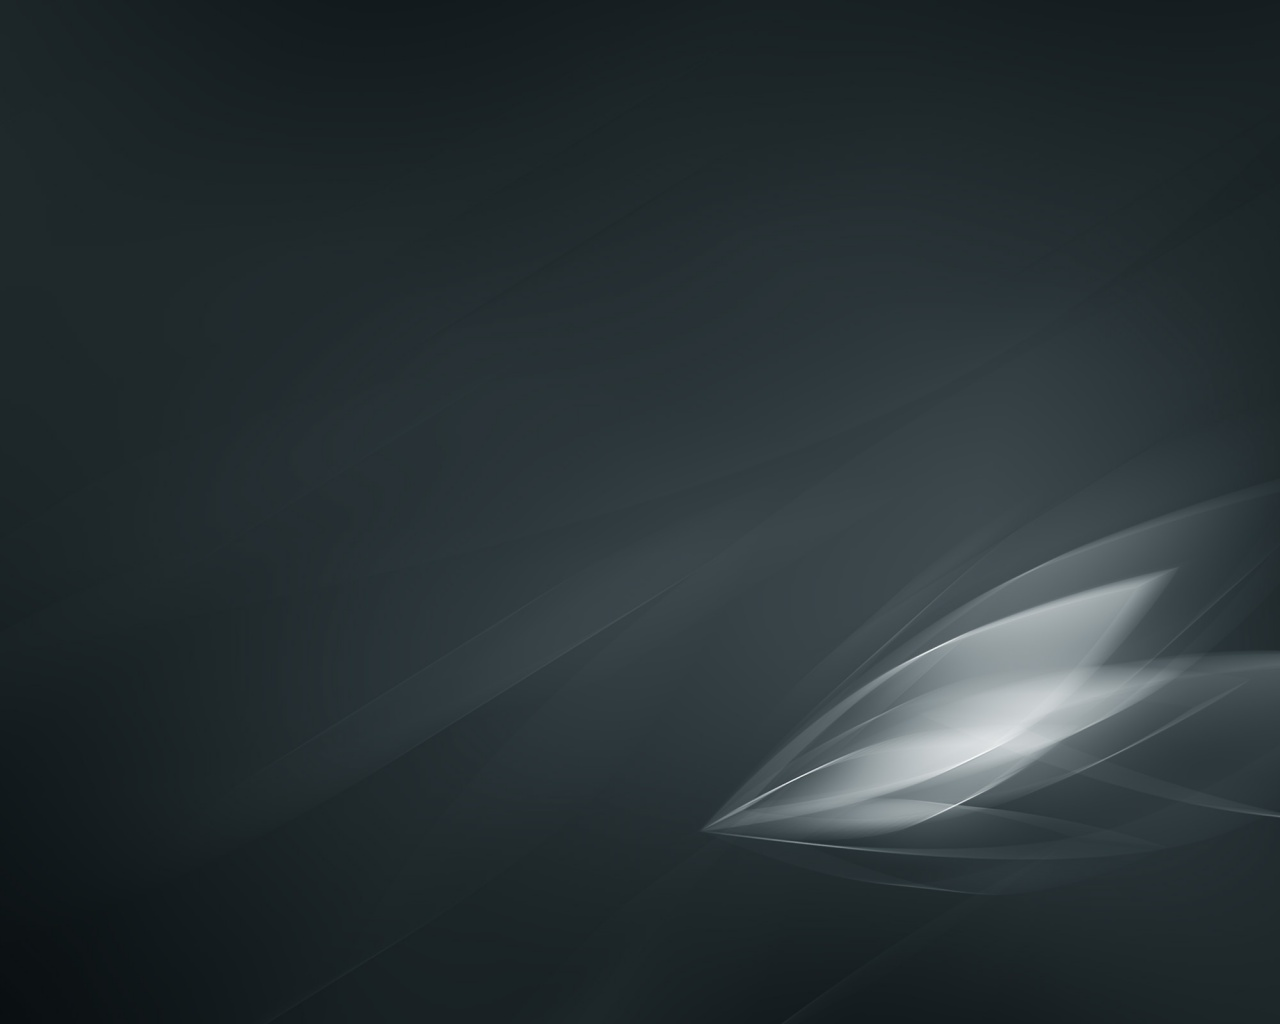 1280x1024 Clean Abstract Background Desktop PC And Mac Wallpaper